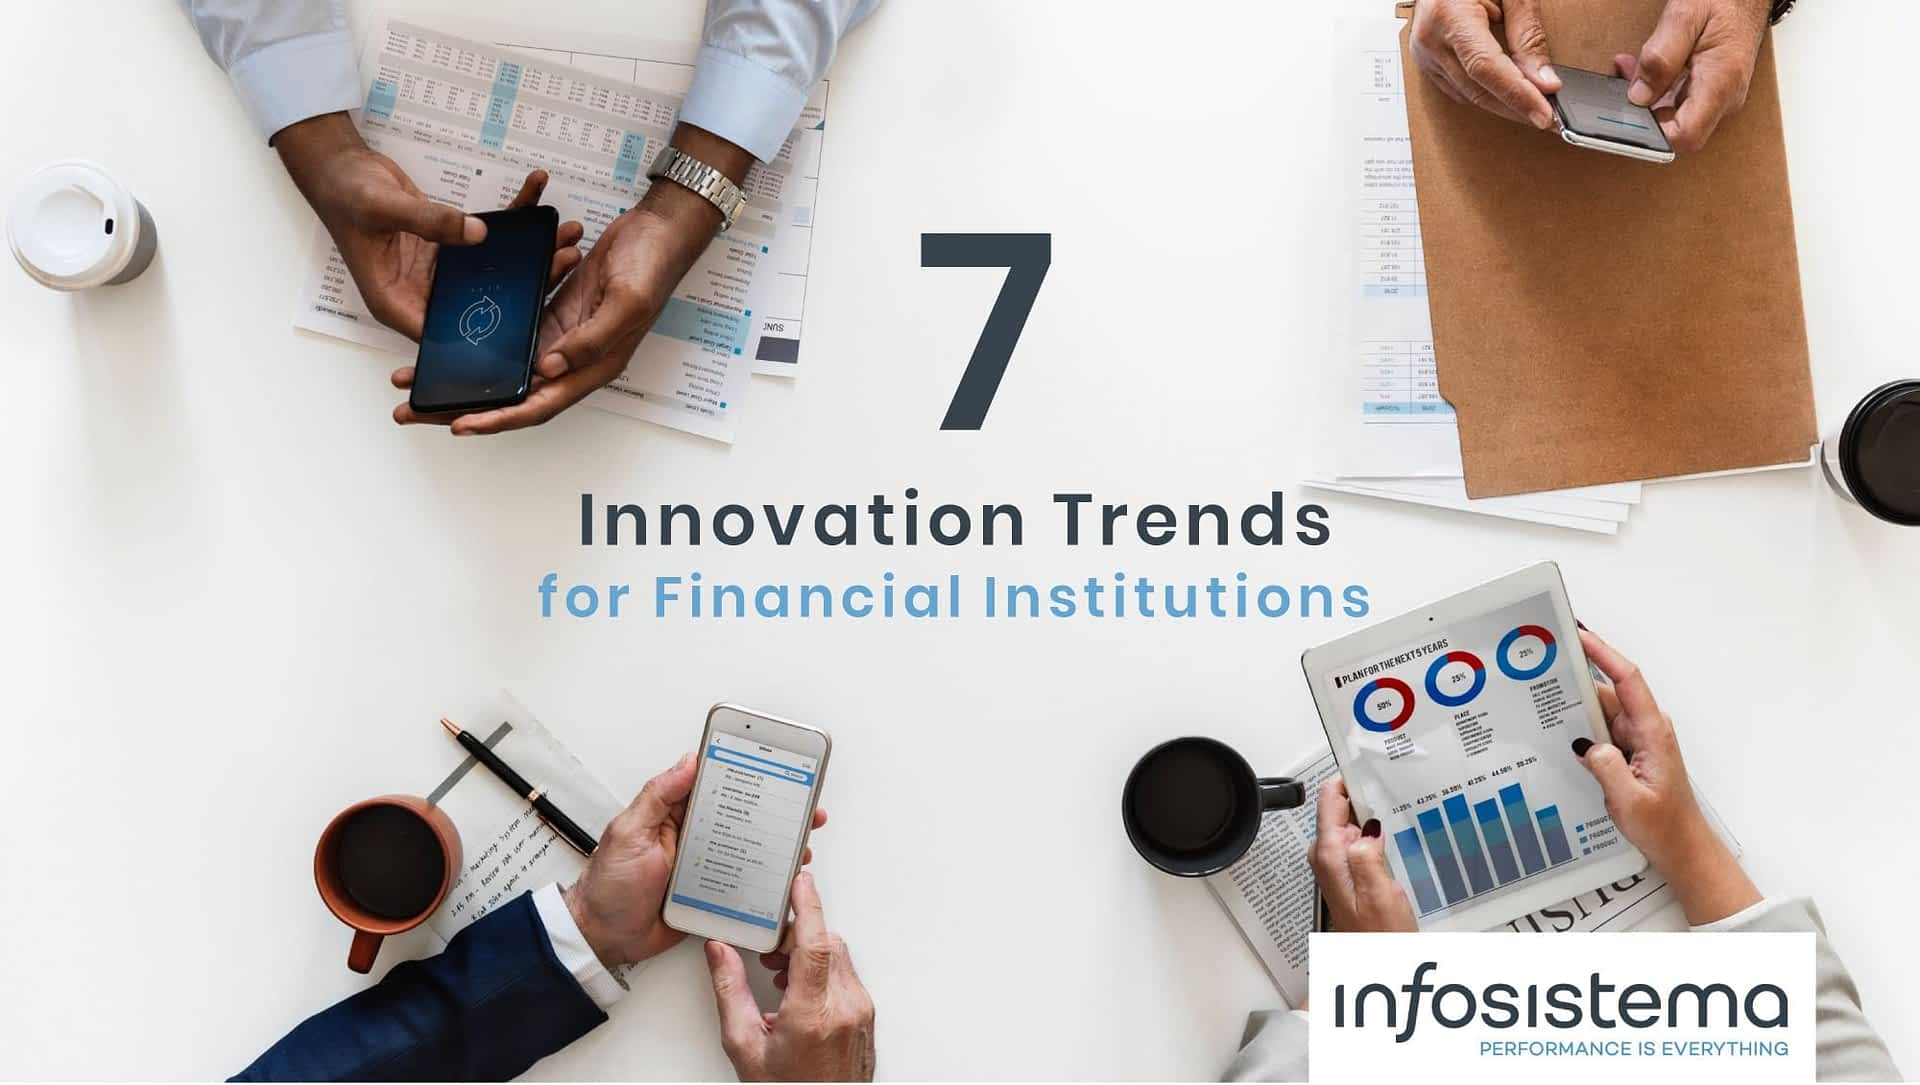 7 Innovation Trends for Financial Institutions